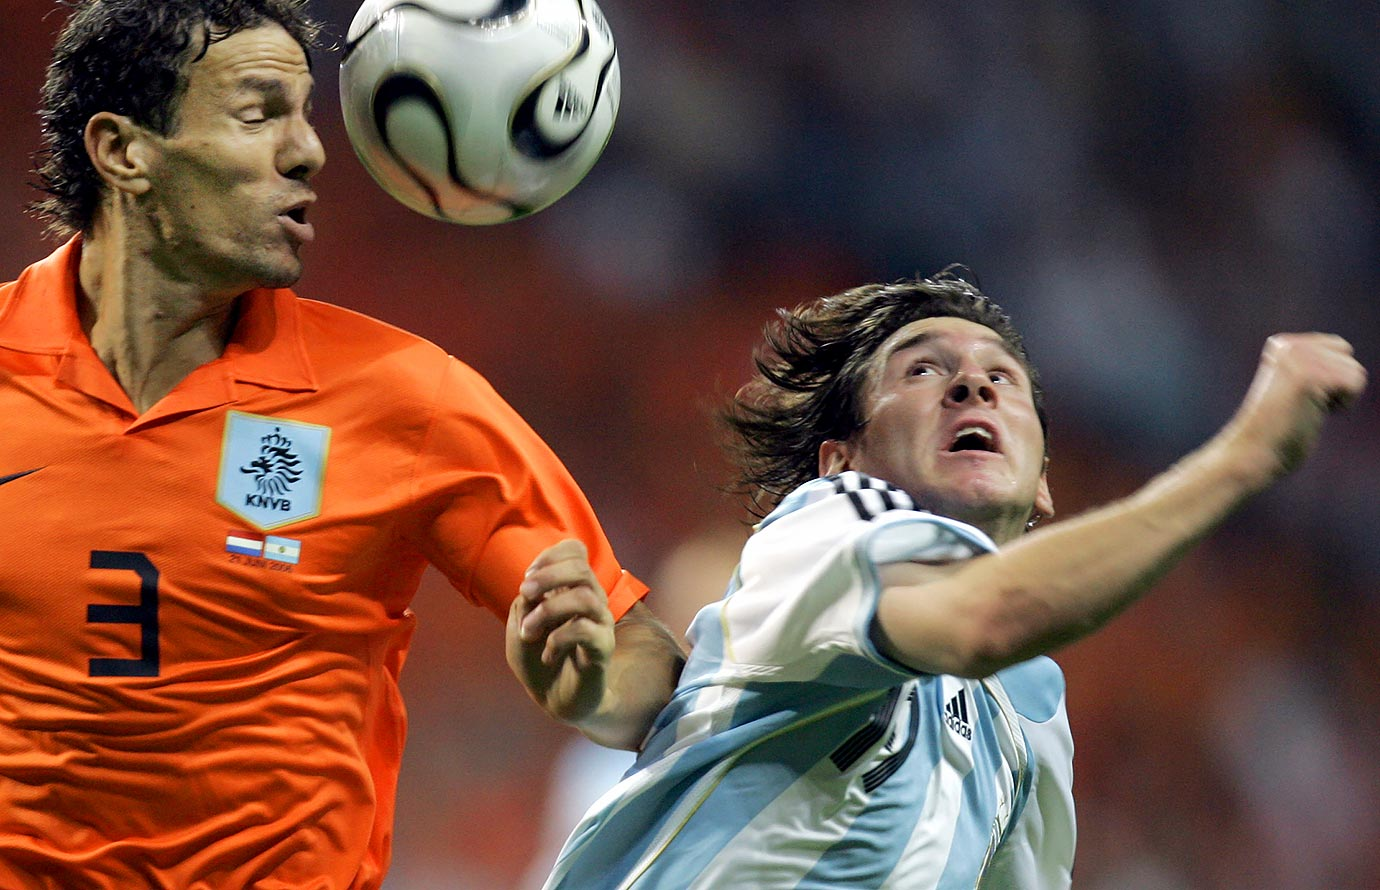 Khalid Boulahrouz and Lionel Messi challenge for the ball during the World Cup Group C soccer match between the Netherlands and Argentina on June 21, 2006 at the World Cup stadium in Frankfurt, Germany.